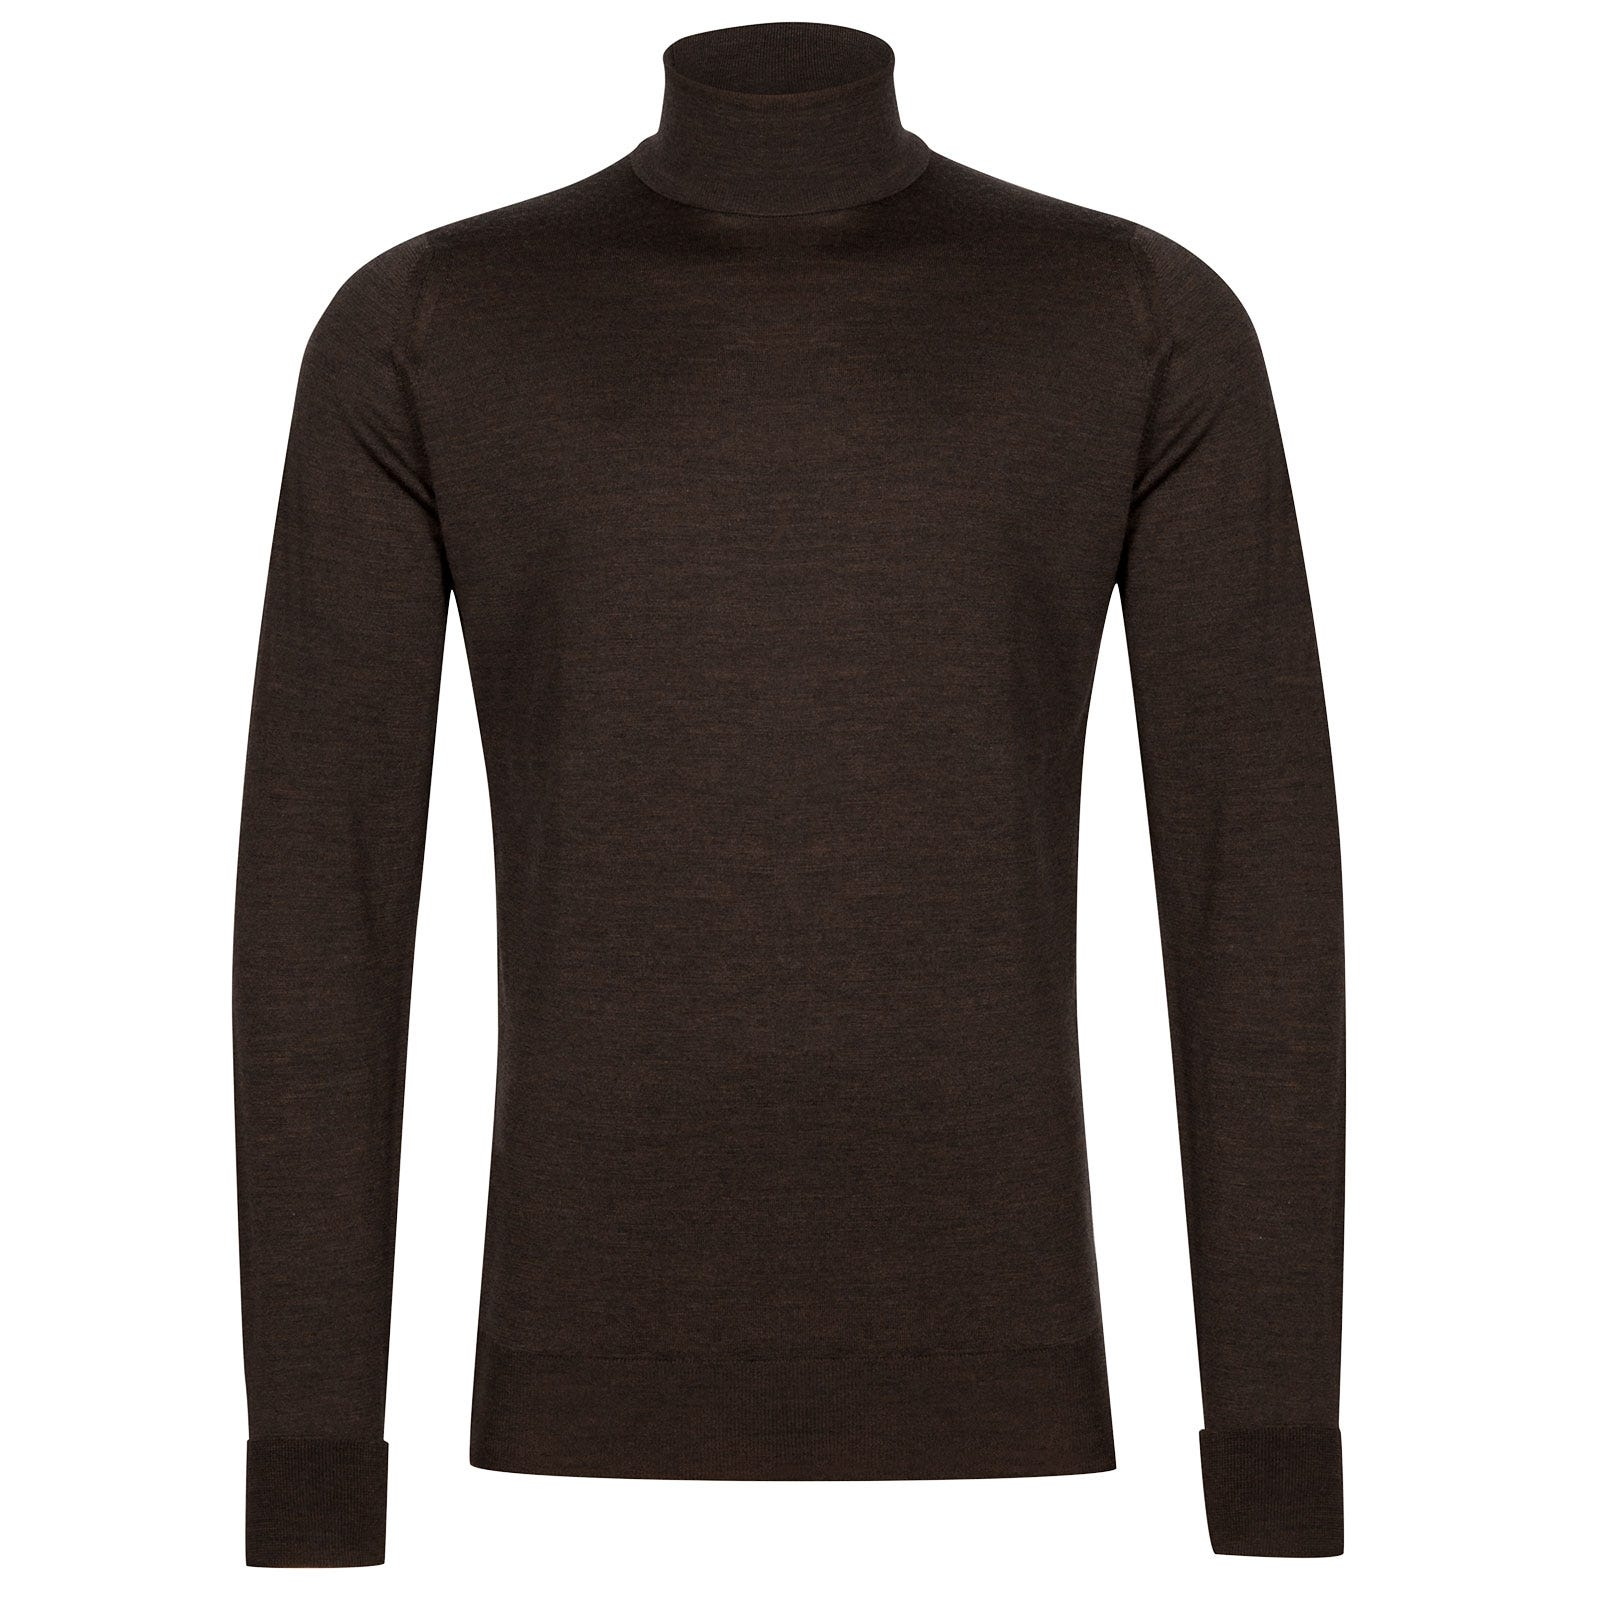 John Smedley Richards Merino Wool Pullover in Chestnut-S